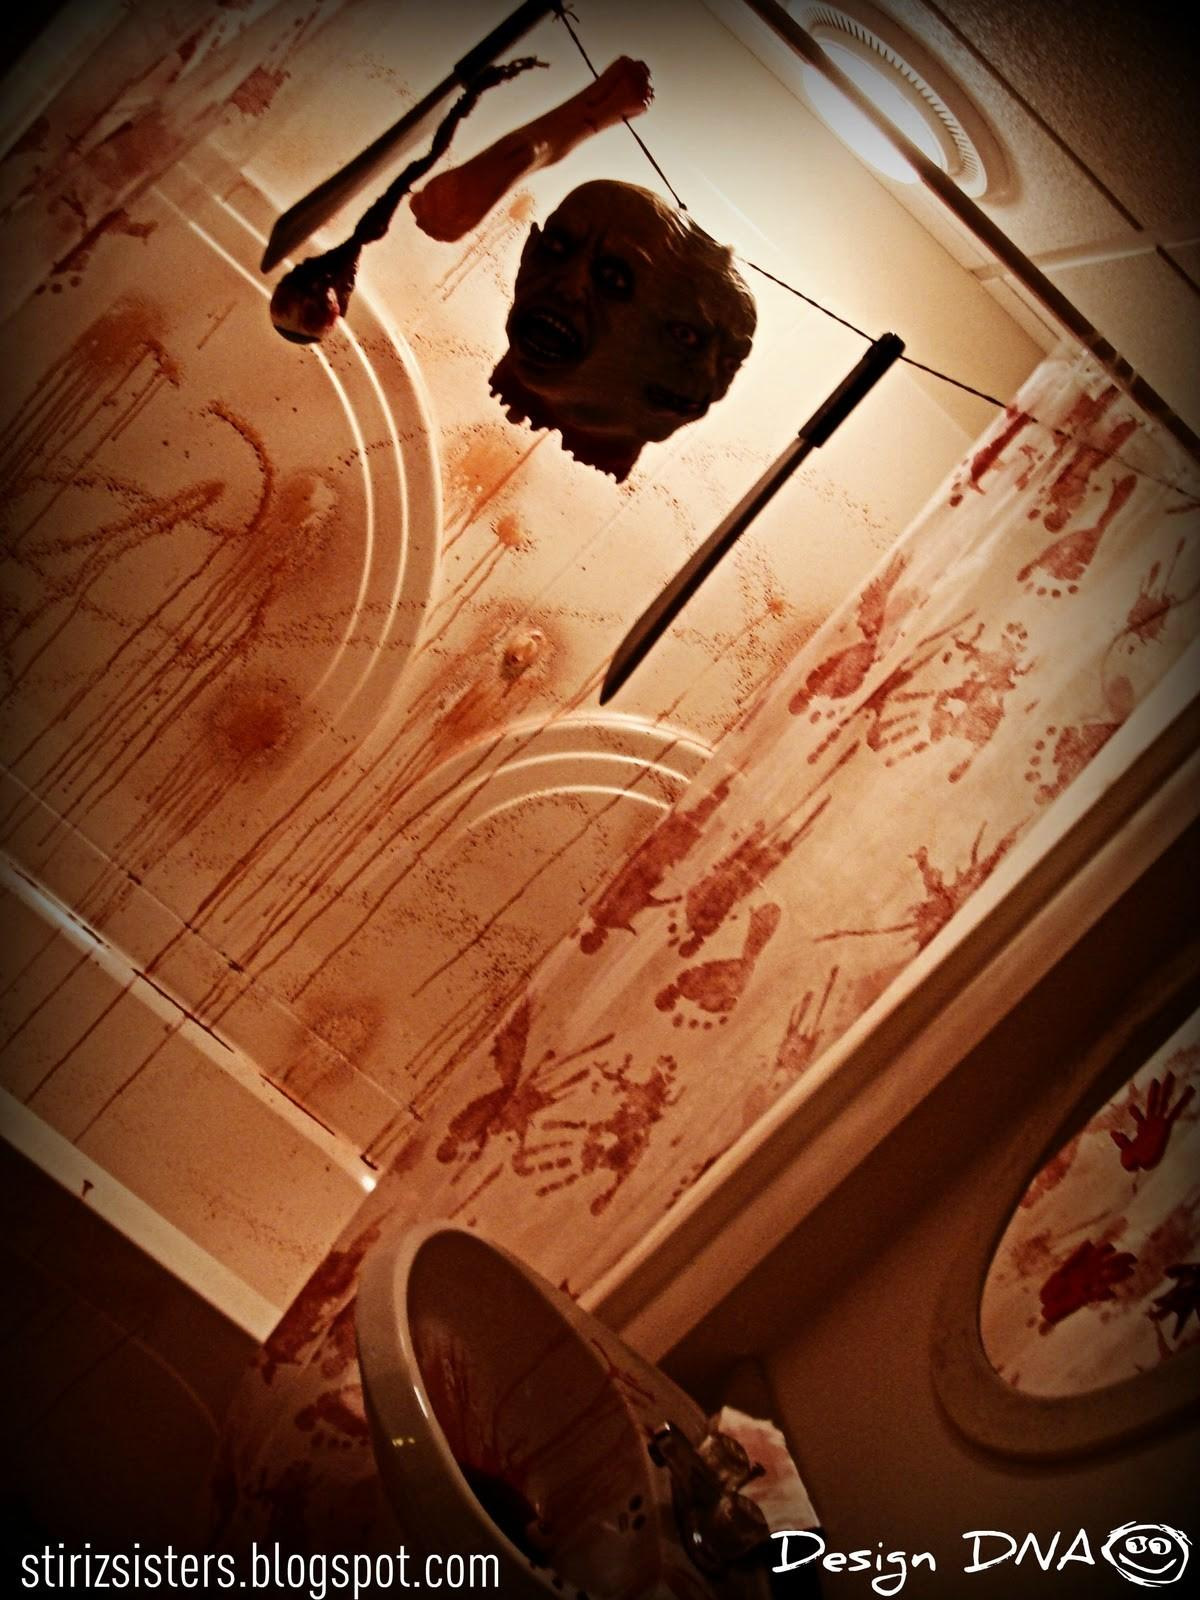 Design Dna Haunted House Rooms Bloody Bathroom